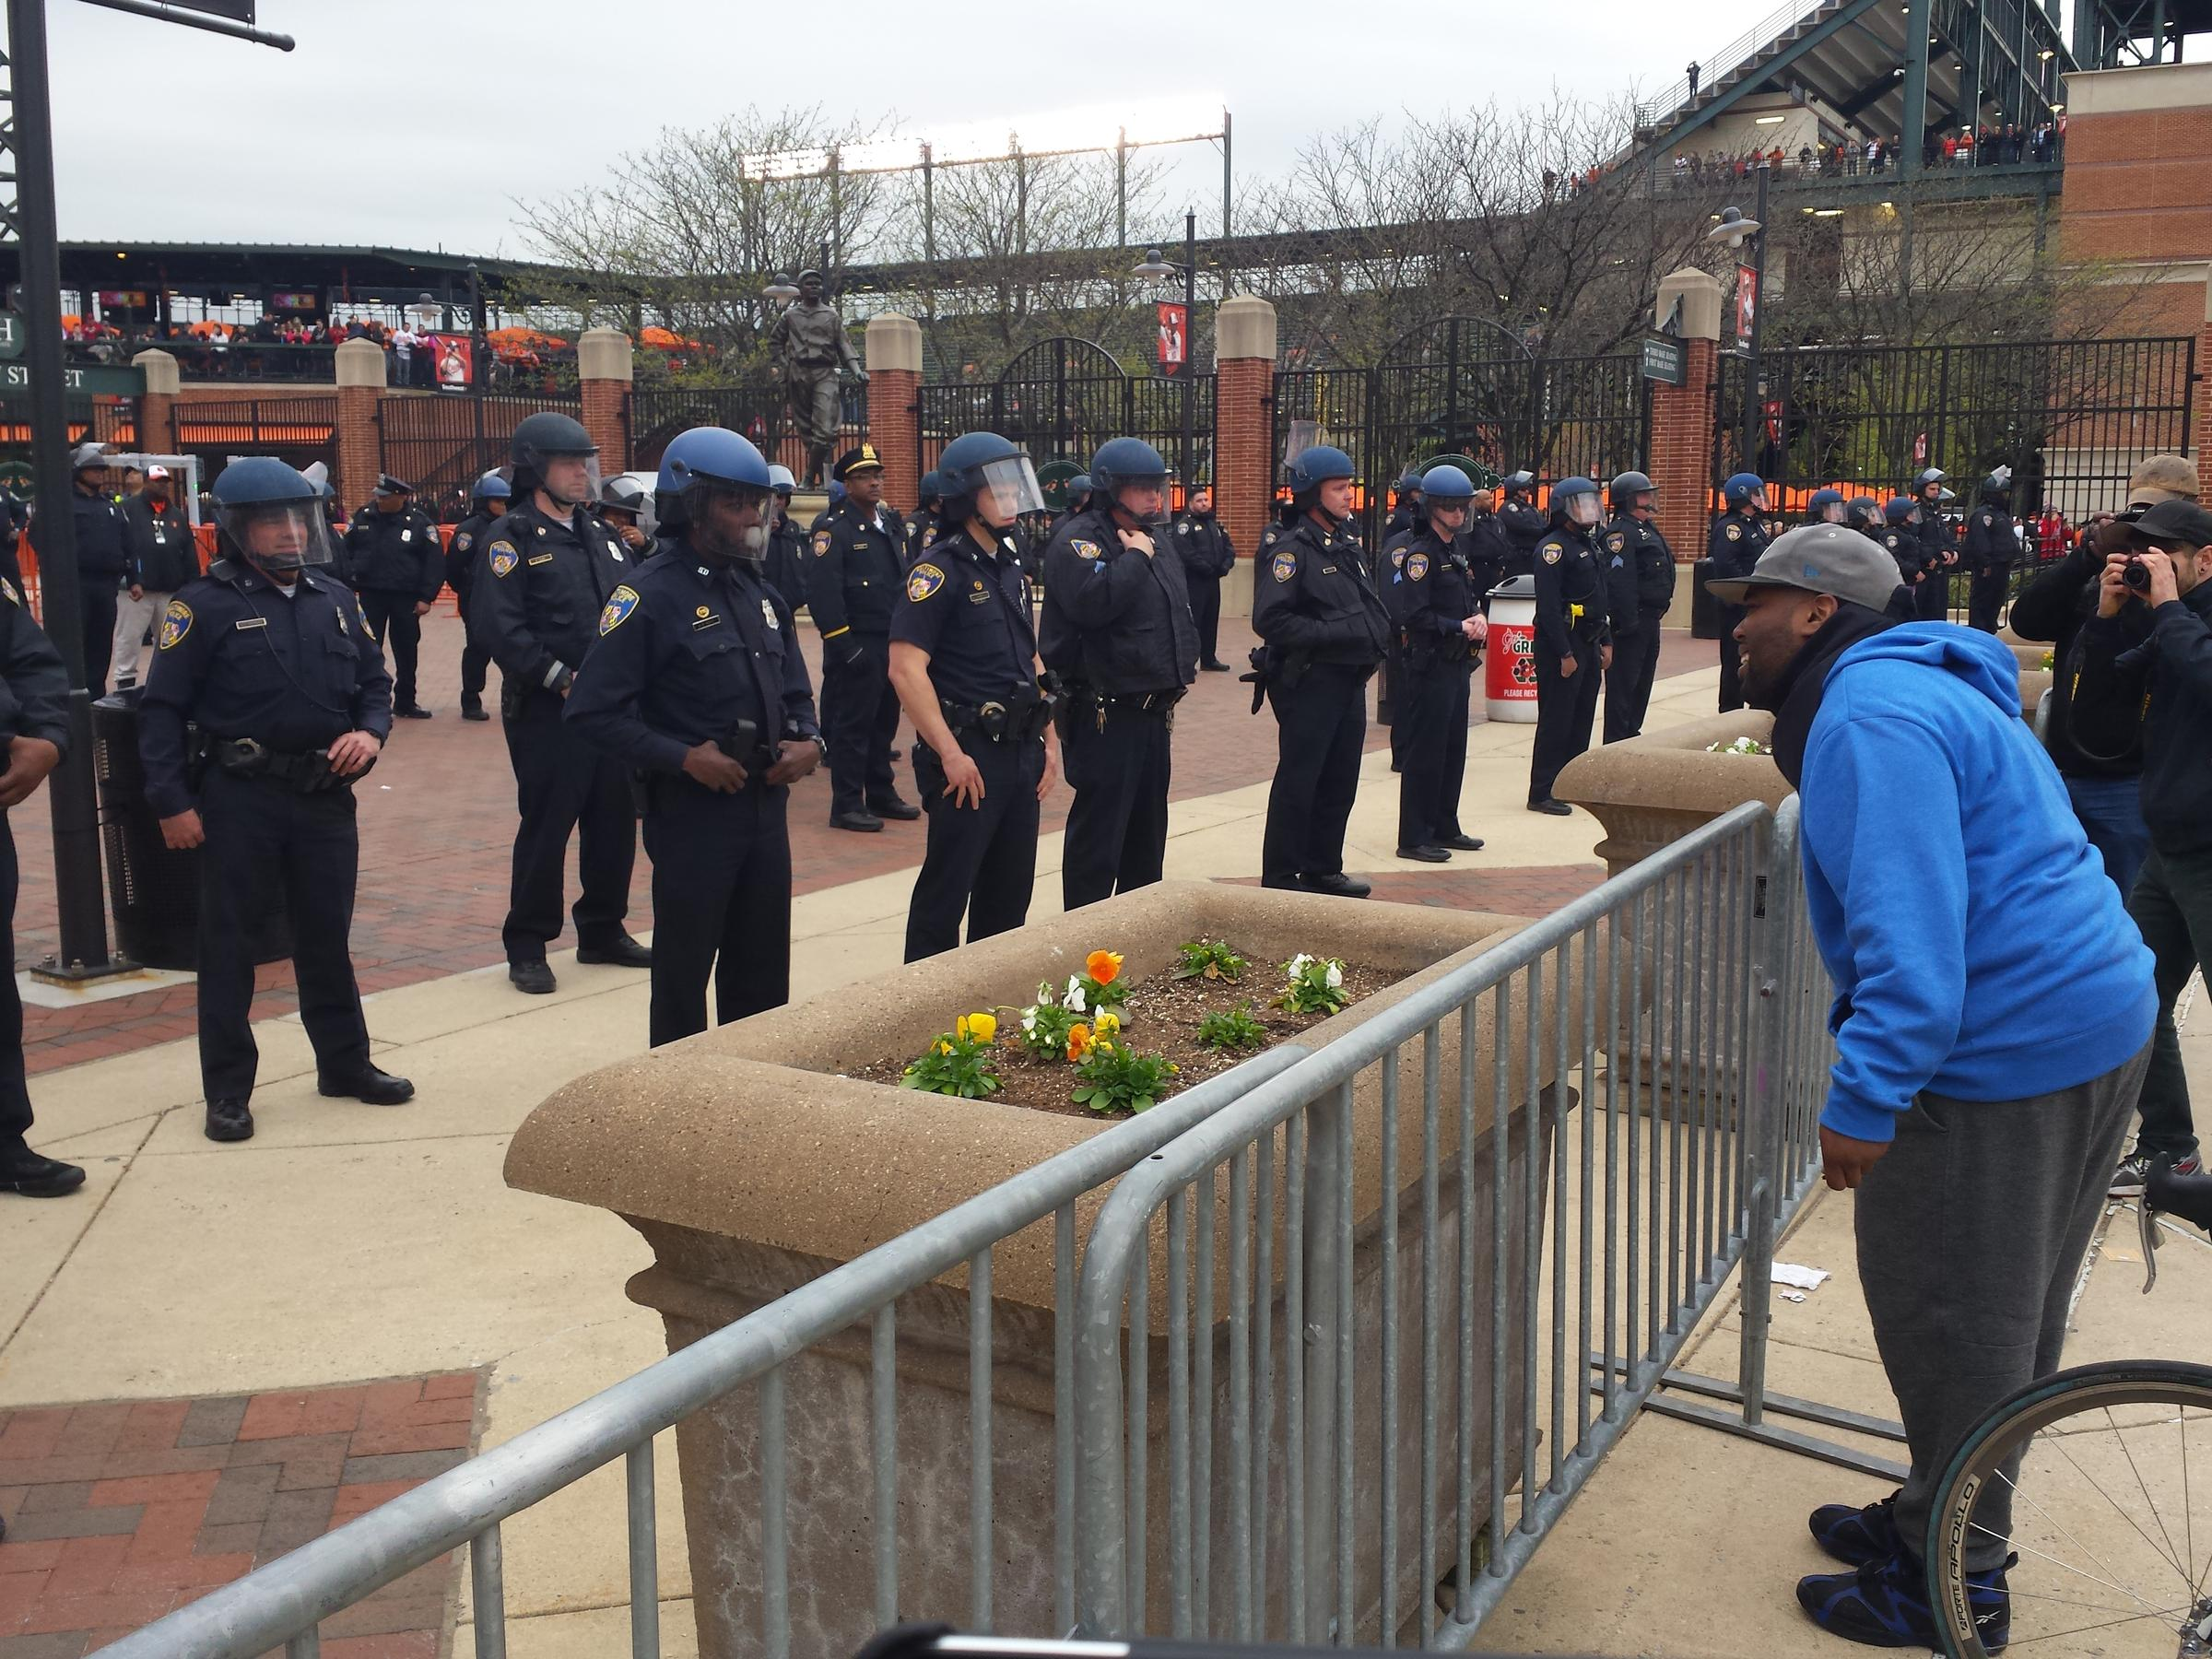 Baltimore police officers in riot gear push protestors back along - A Protester Heckling Baltimore Police Officers At Oriole Park At Camden Yards